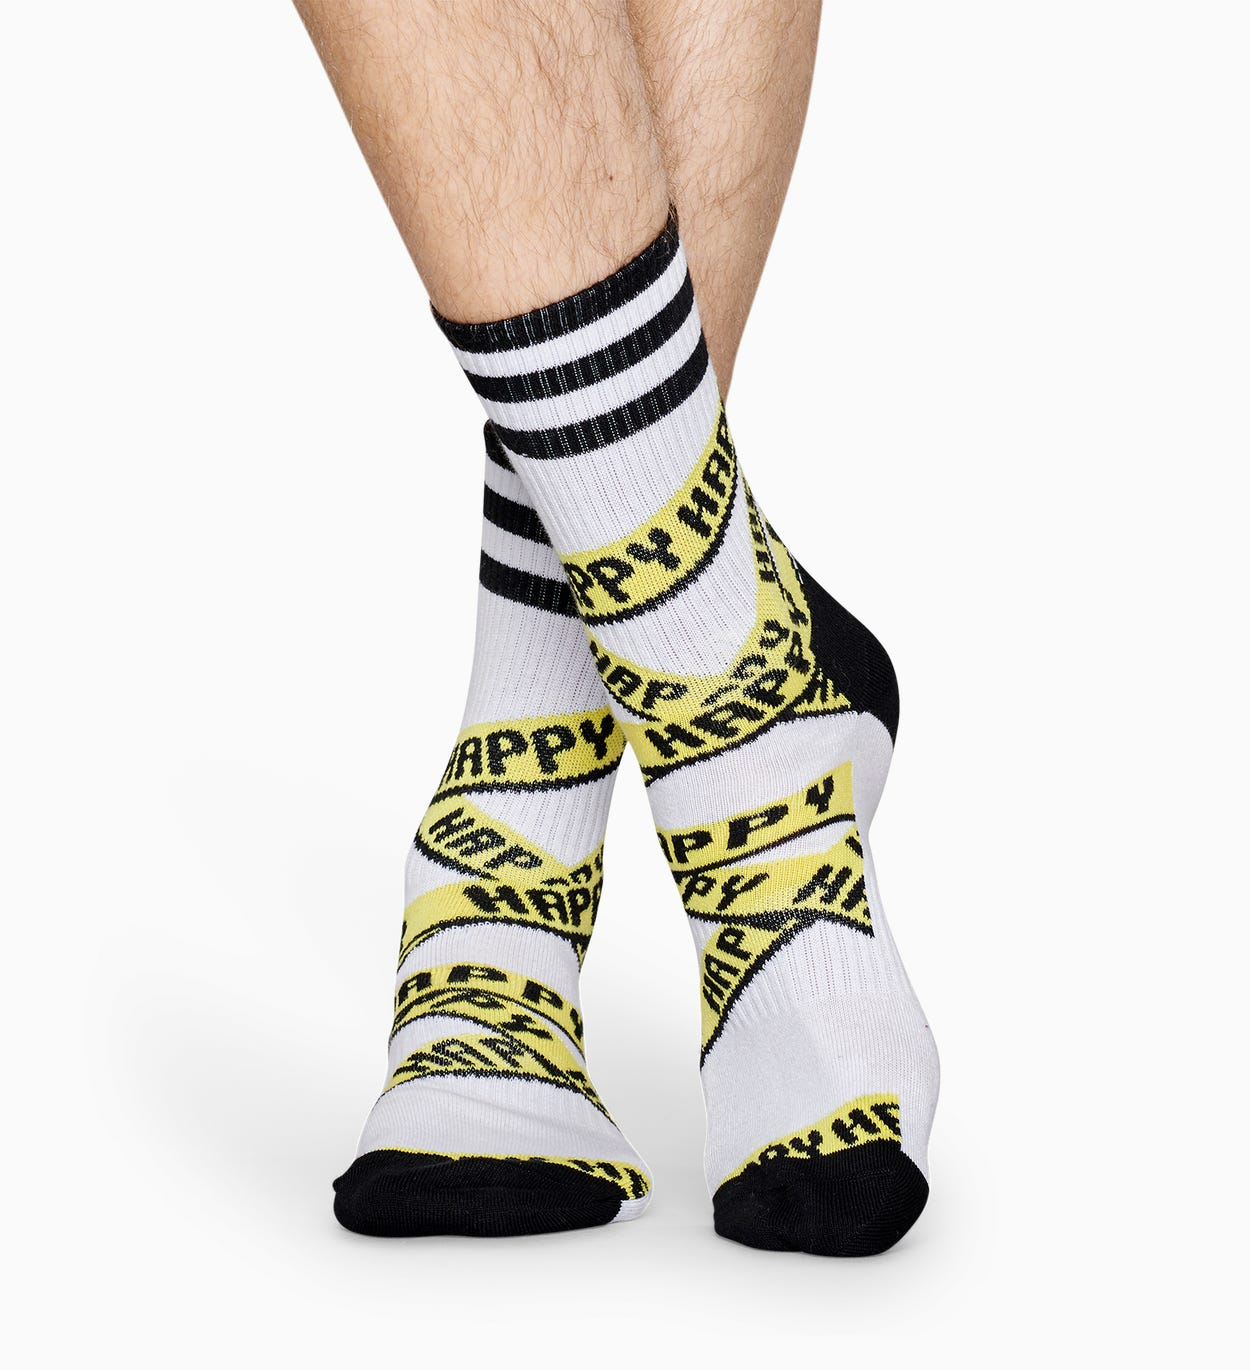 White sport socks: Ribbon - ATHLETIC | Happy Socks